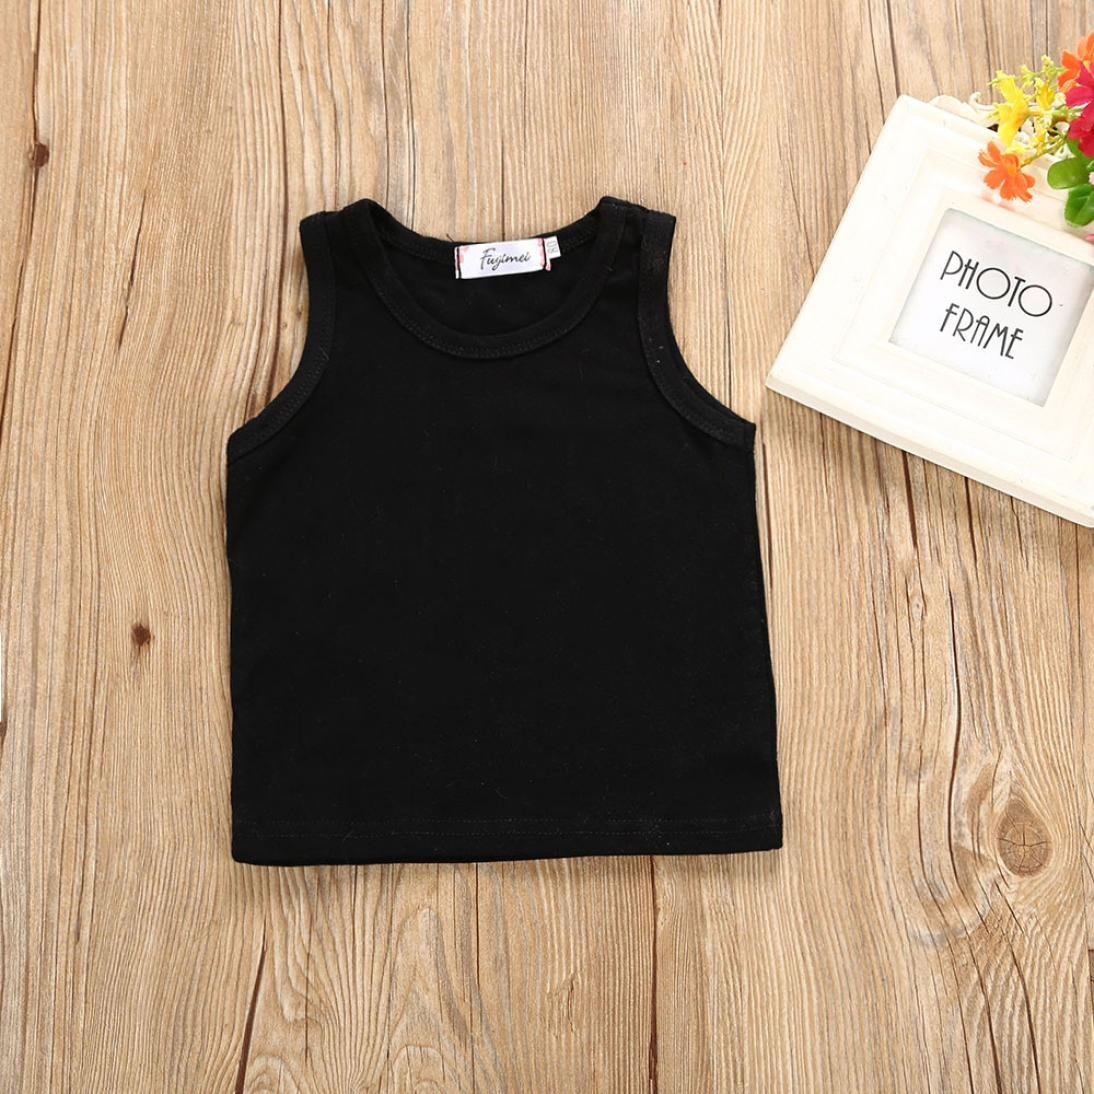 338ac471f833 Amazon.com  G-real Little Girls Kids Cute 2pcs Black Vest T-Shirt Tops+ Floral Tutu Skirt Summer Outfits for 1-5T  Clothing